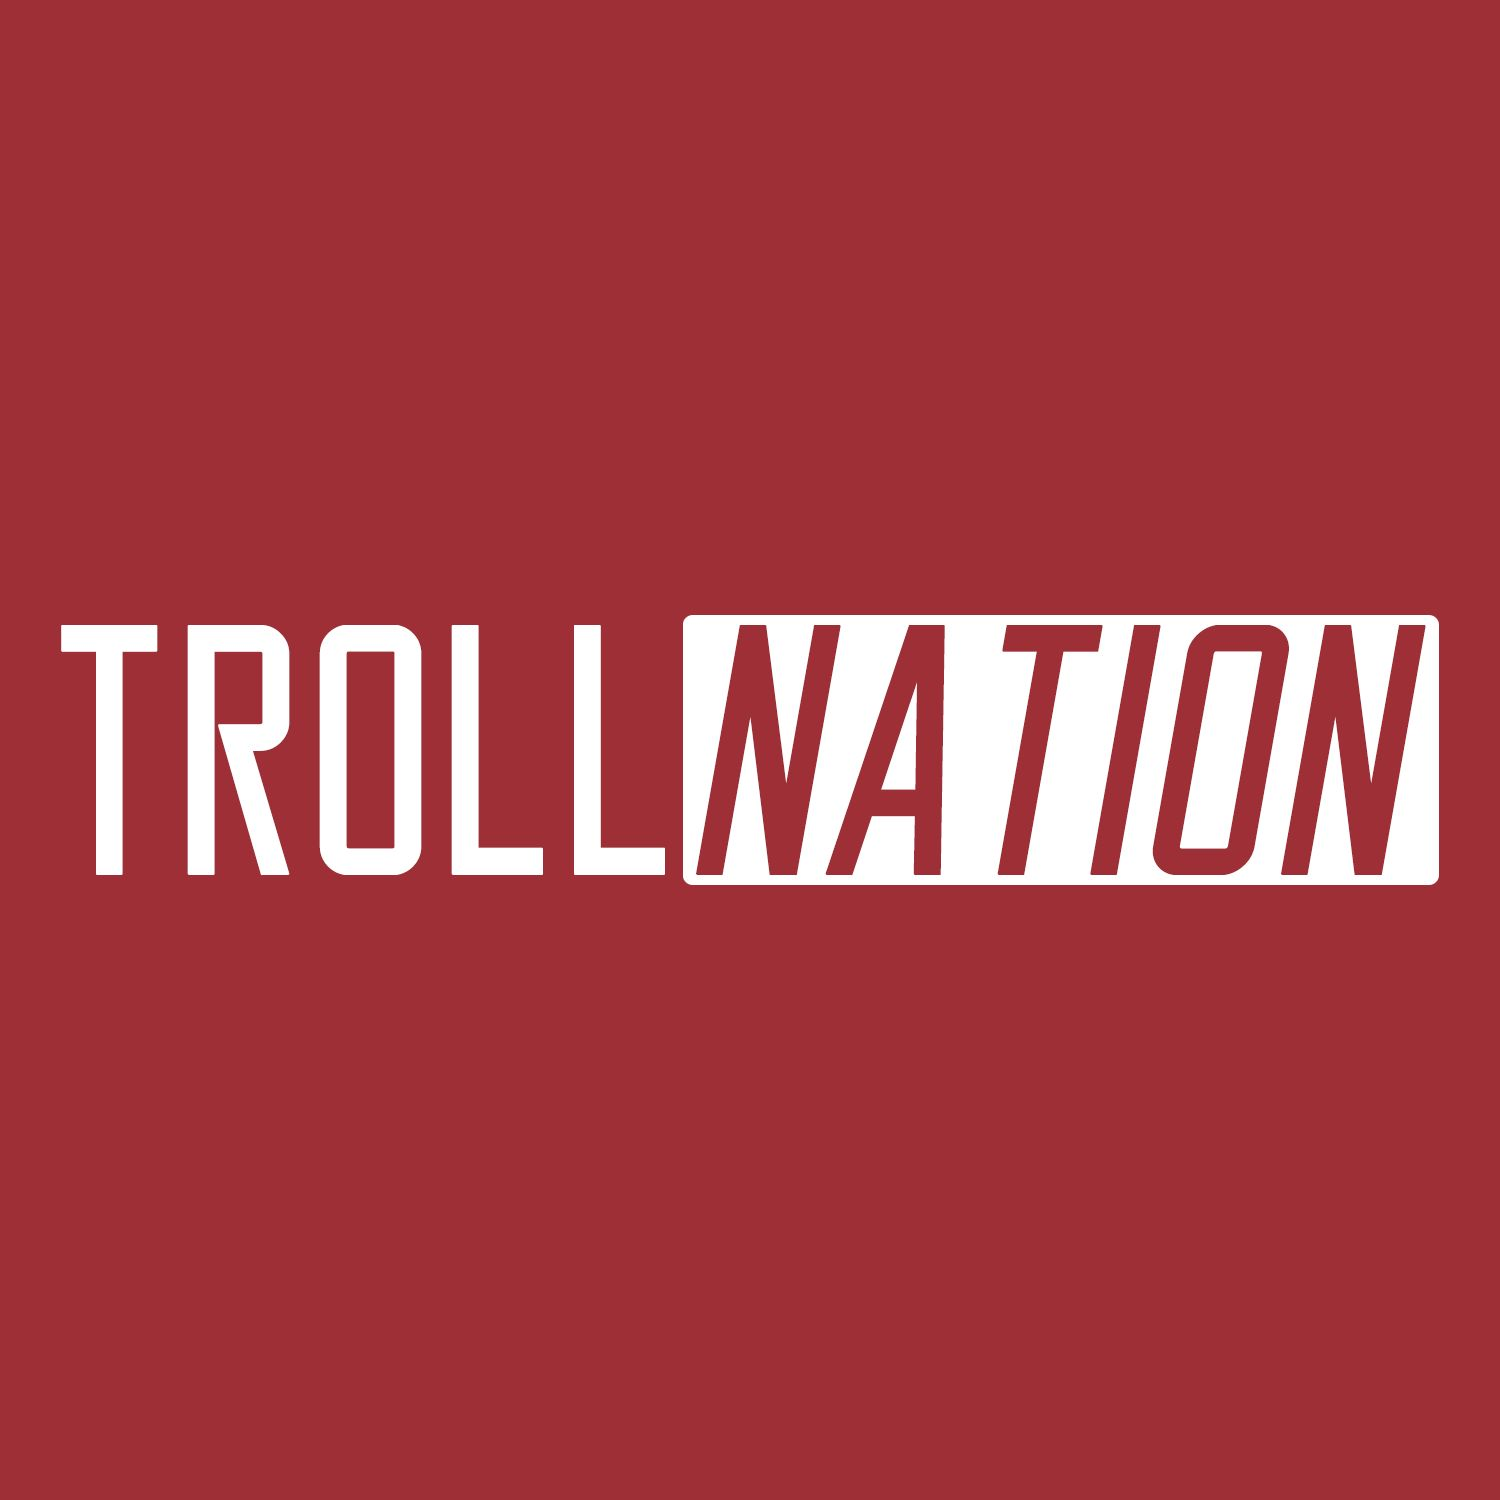 Troll Nation